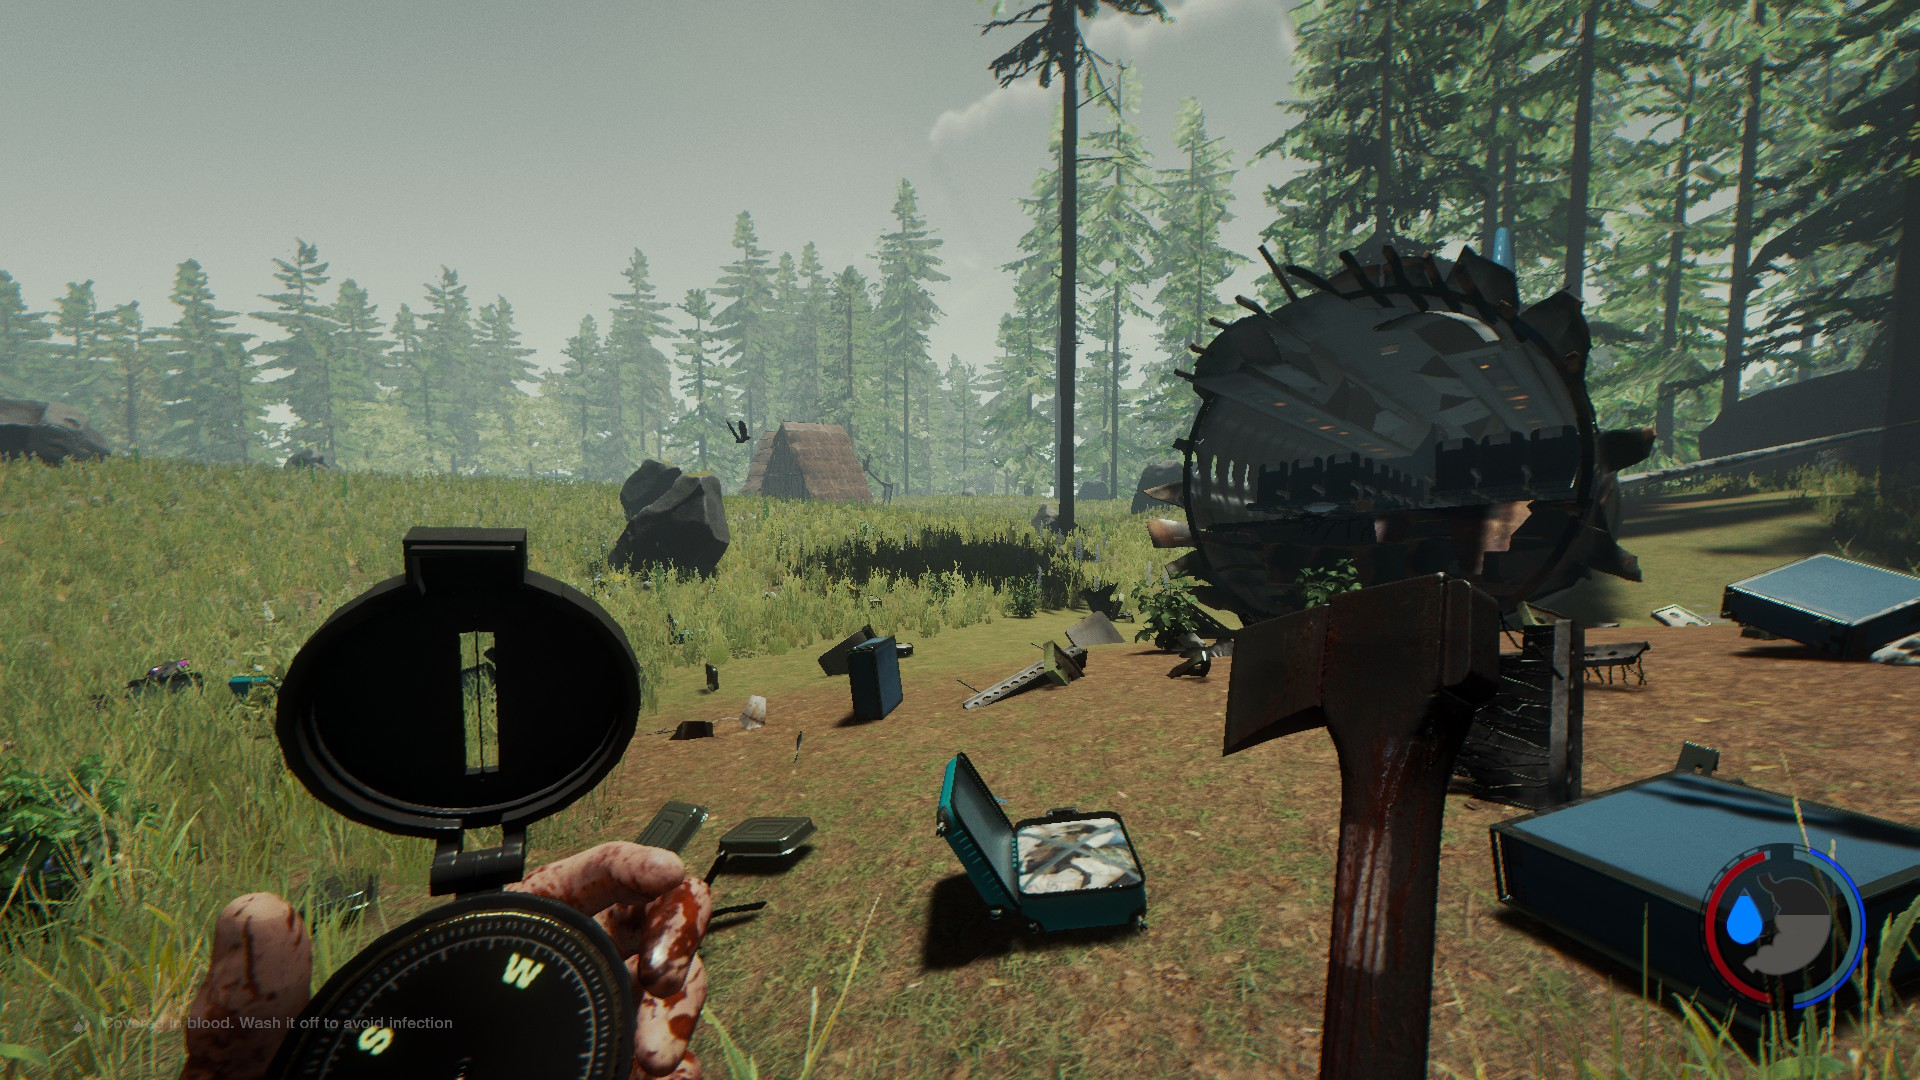 The Forest Cockpit Karte.Steam Community Guide Katana Location Updated For V0 52b 12